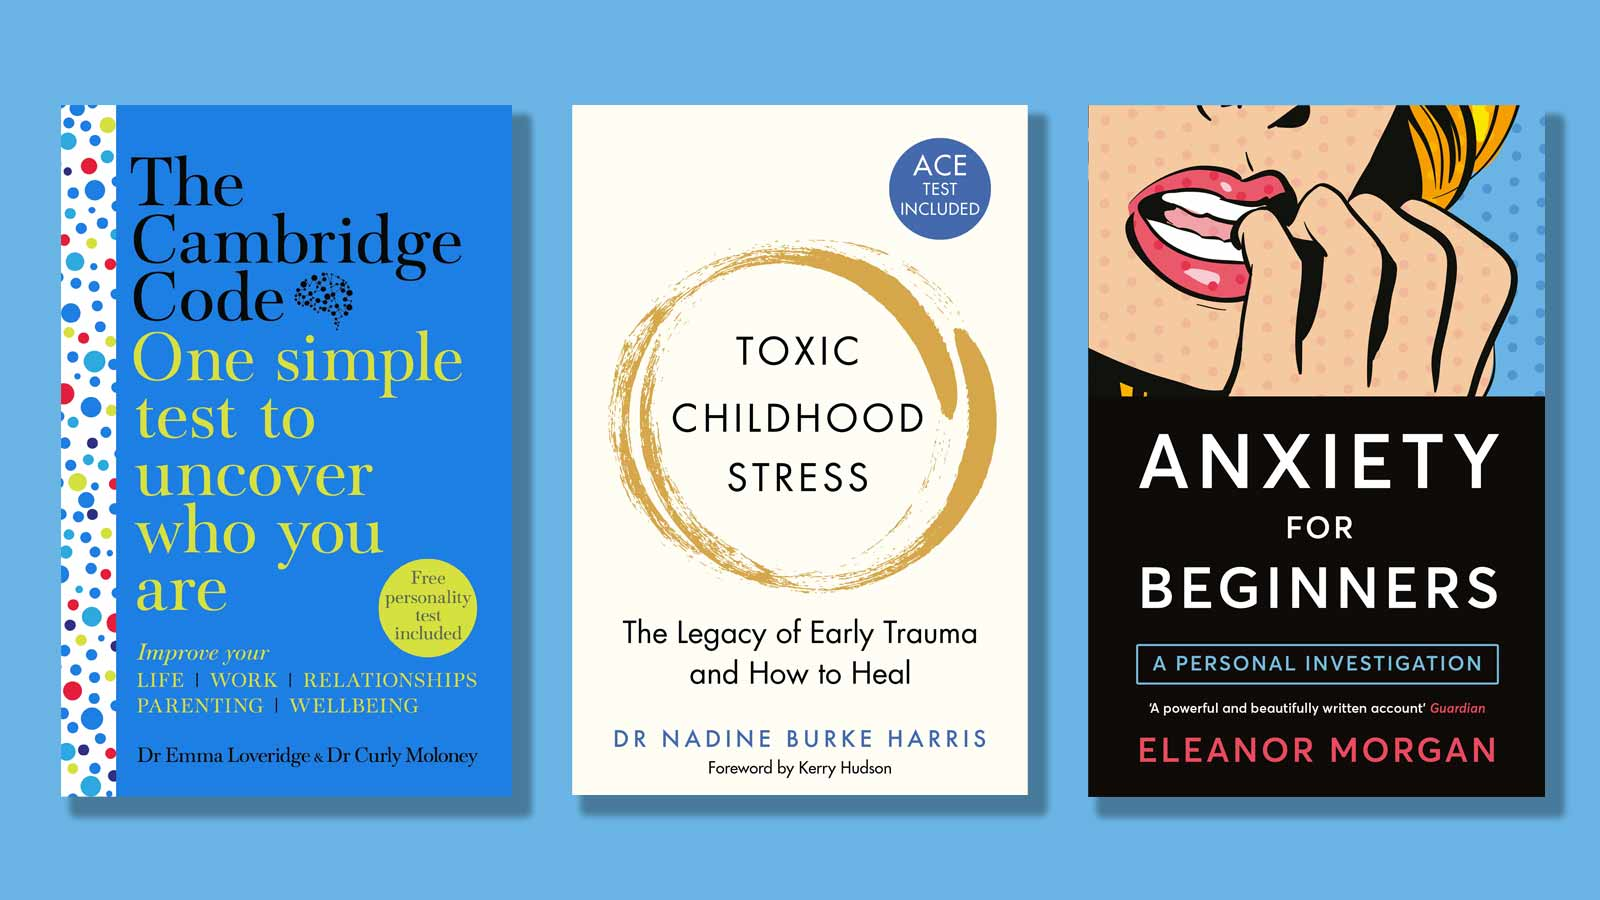 The Cambridge Code, Toxic Childhood Stress and Anxiety for Beginners book covers